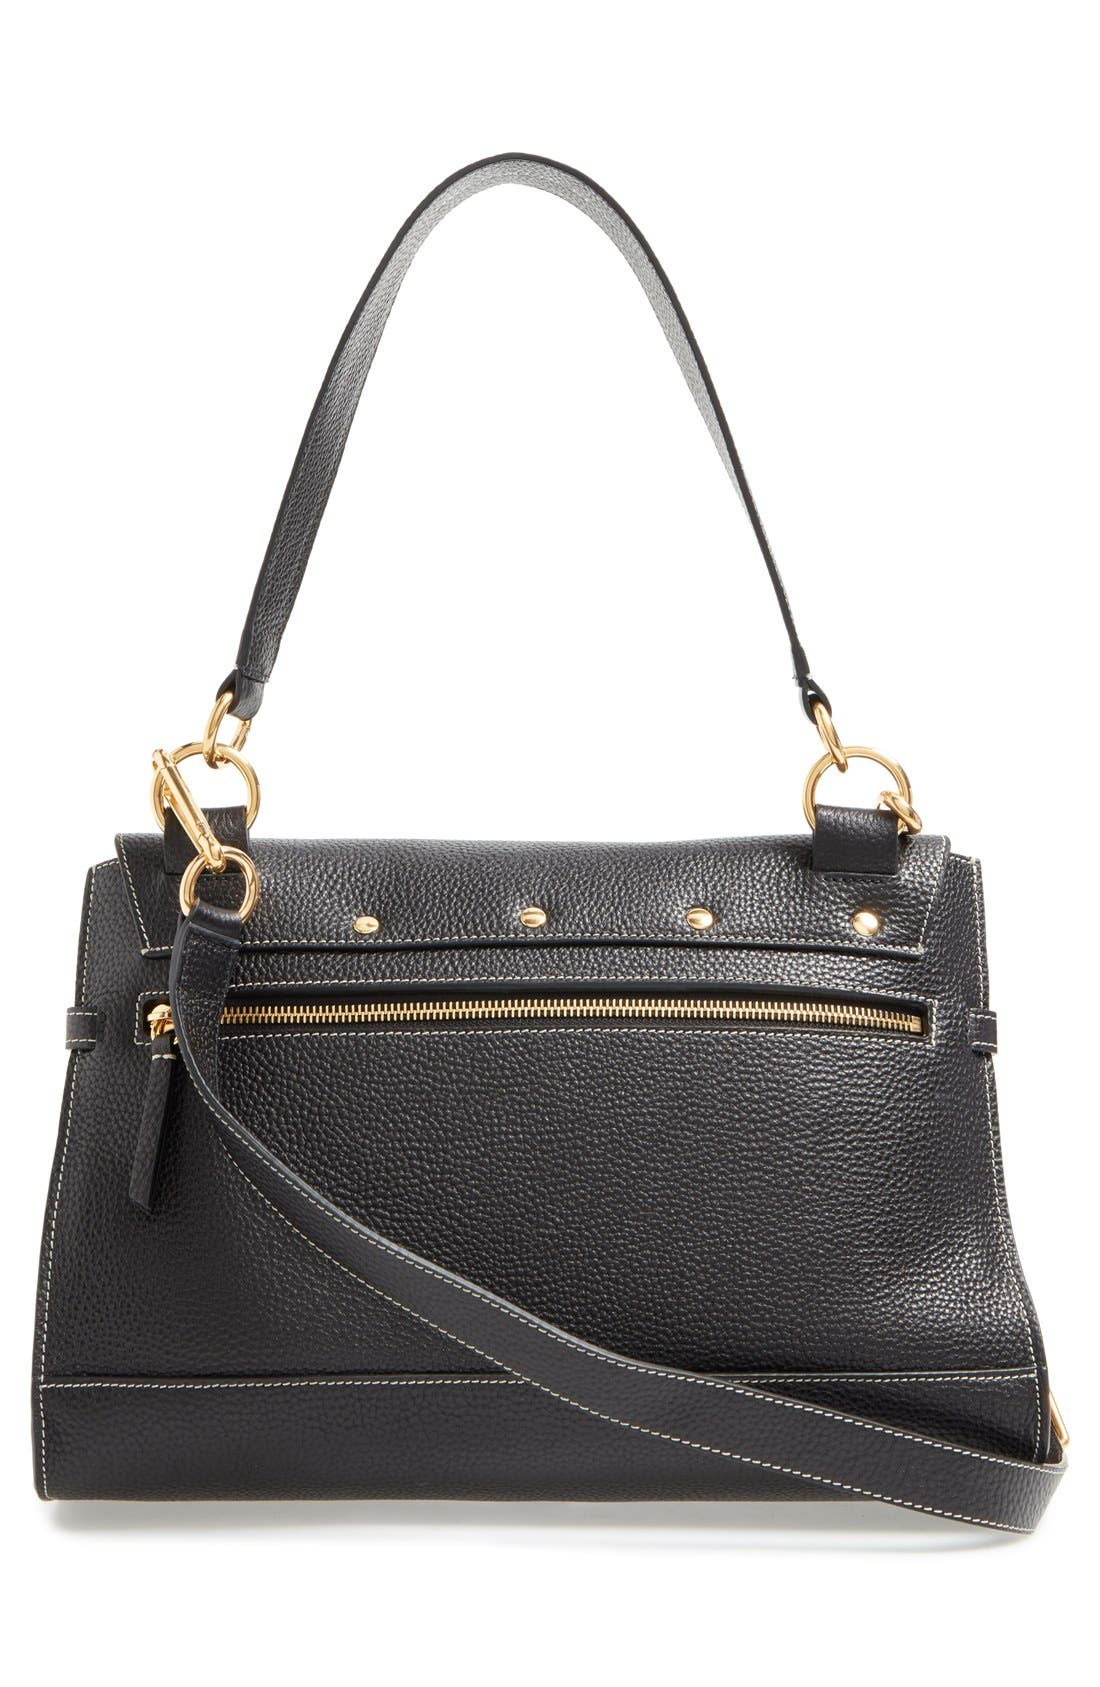 Alternate Image 3  - Mulberry 'Small Buckle' Leather Shoulder Bag